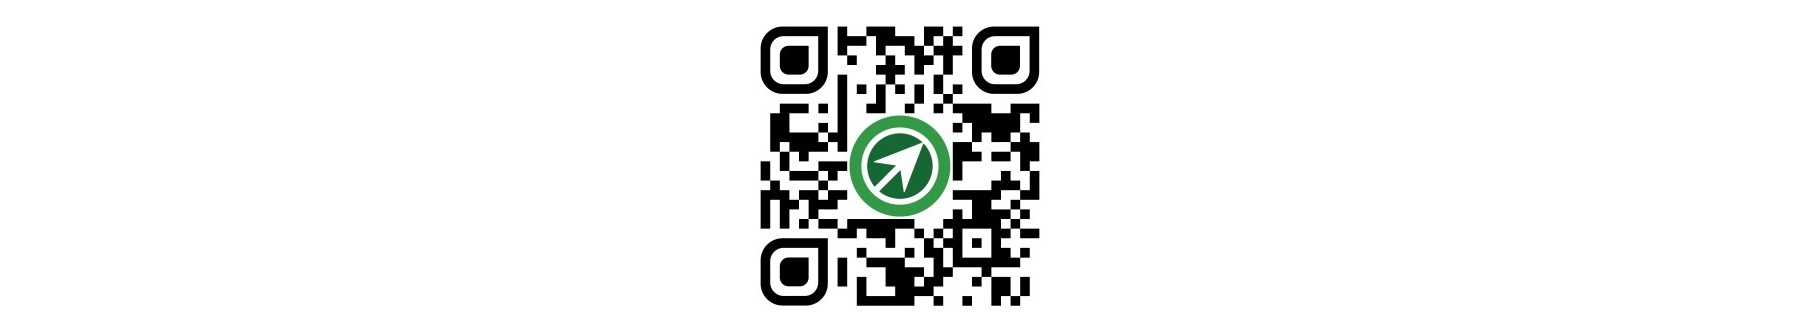 https://campaign-image.com/zohocampaigns/479159000000819052_zc_v141_otds_qrcode_for_newsletter2.jpg